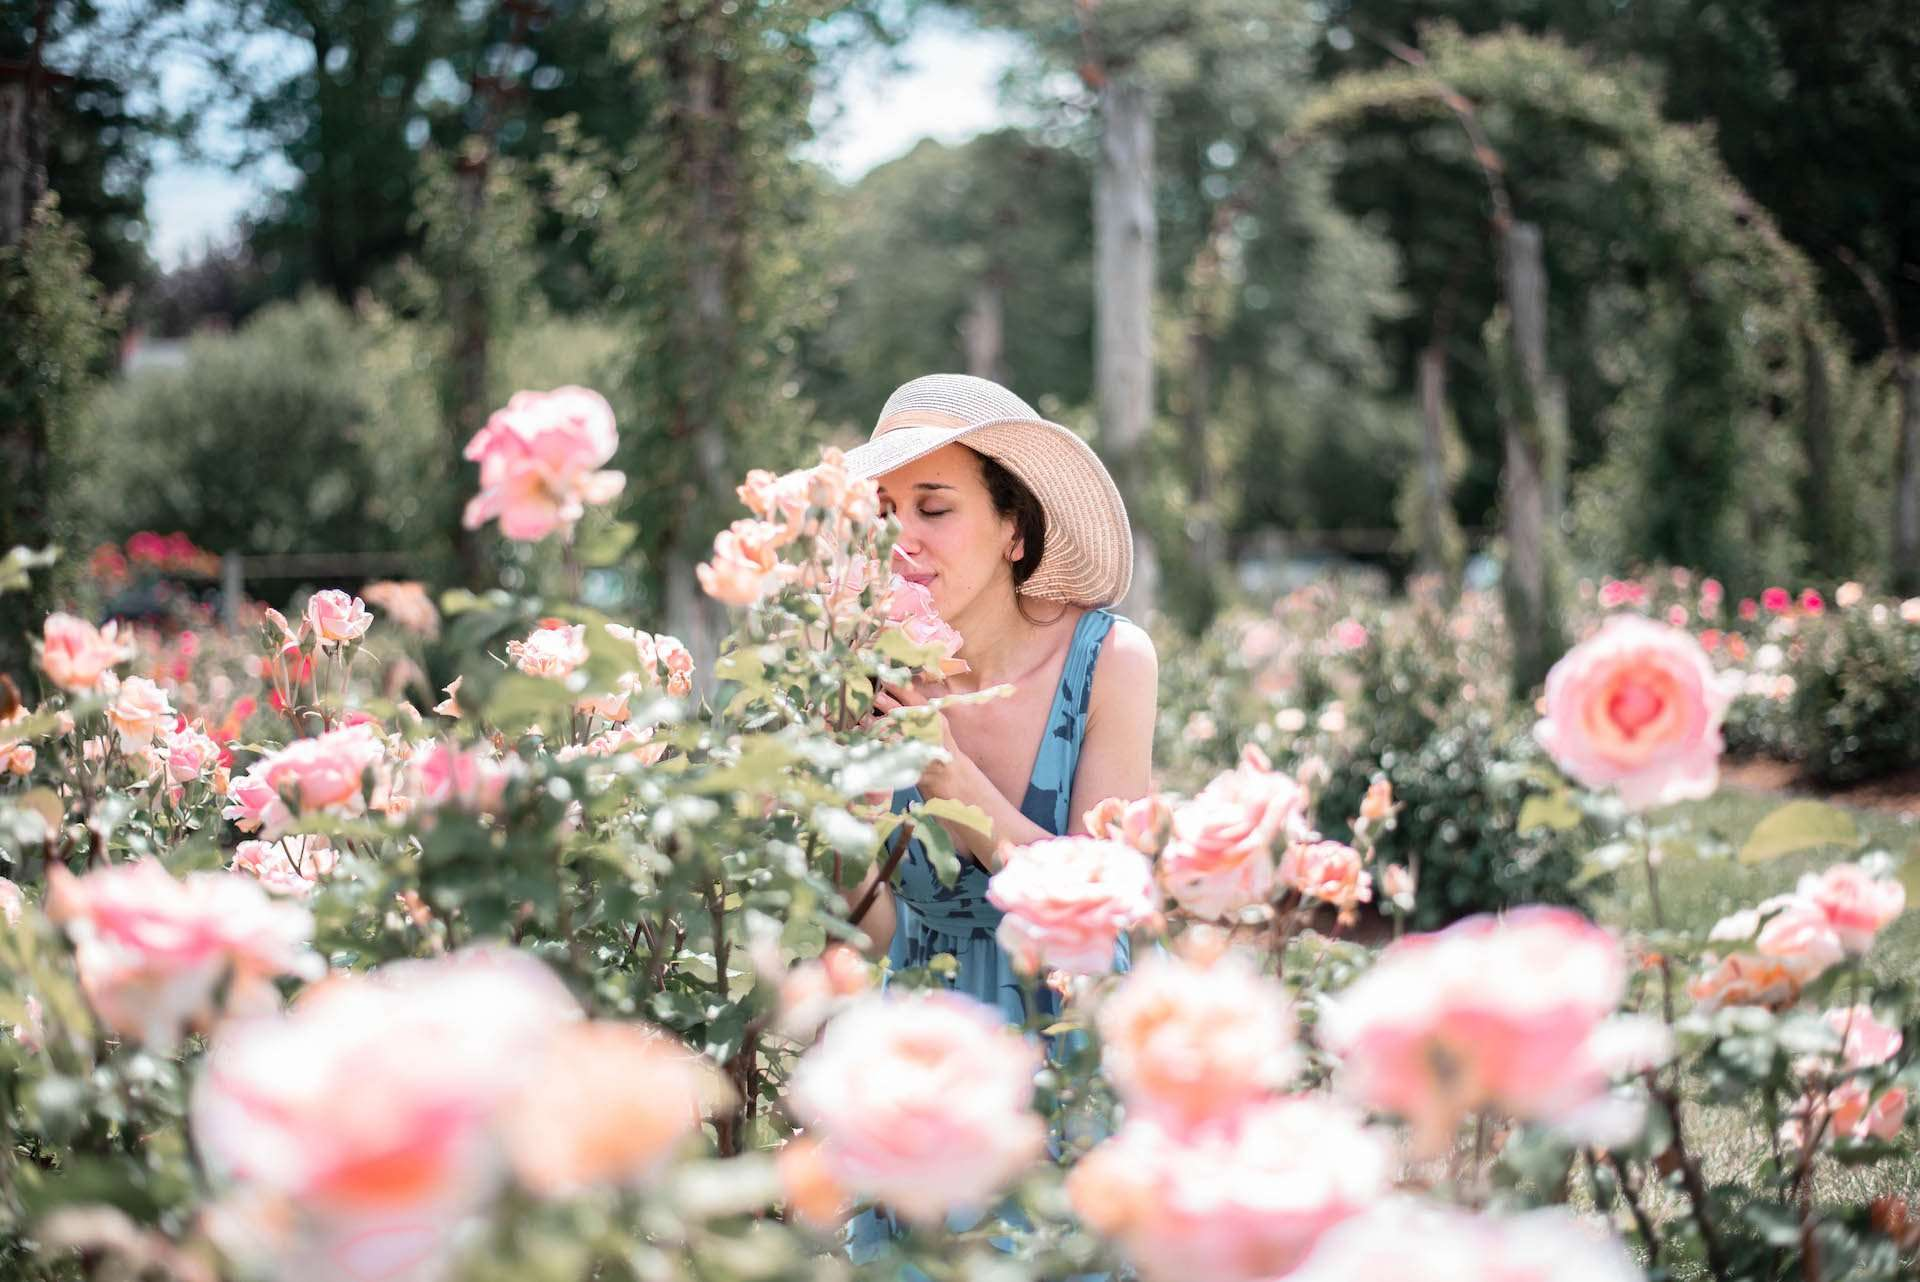 Smelling the roses at Elizabeth Park Rose Garden